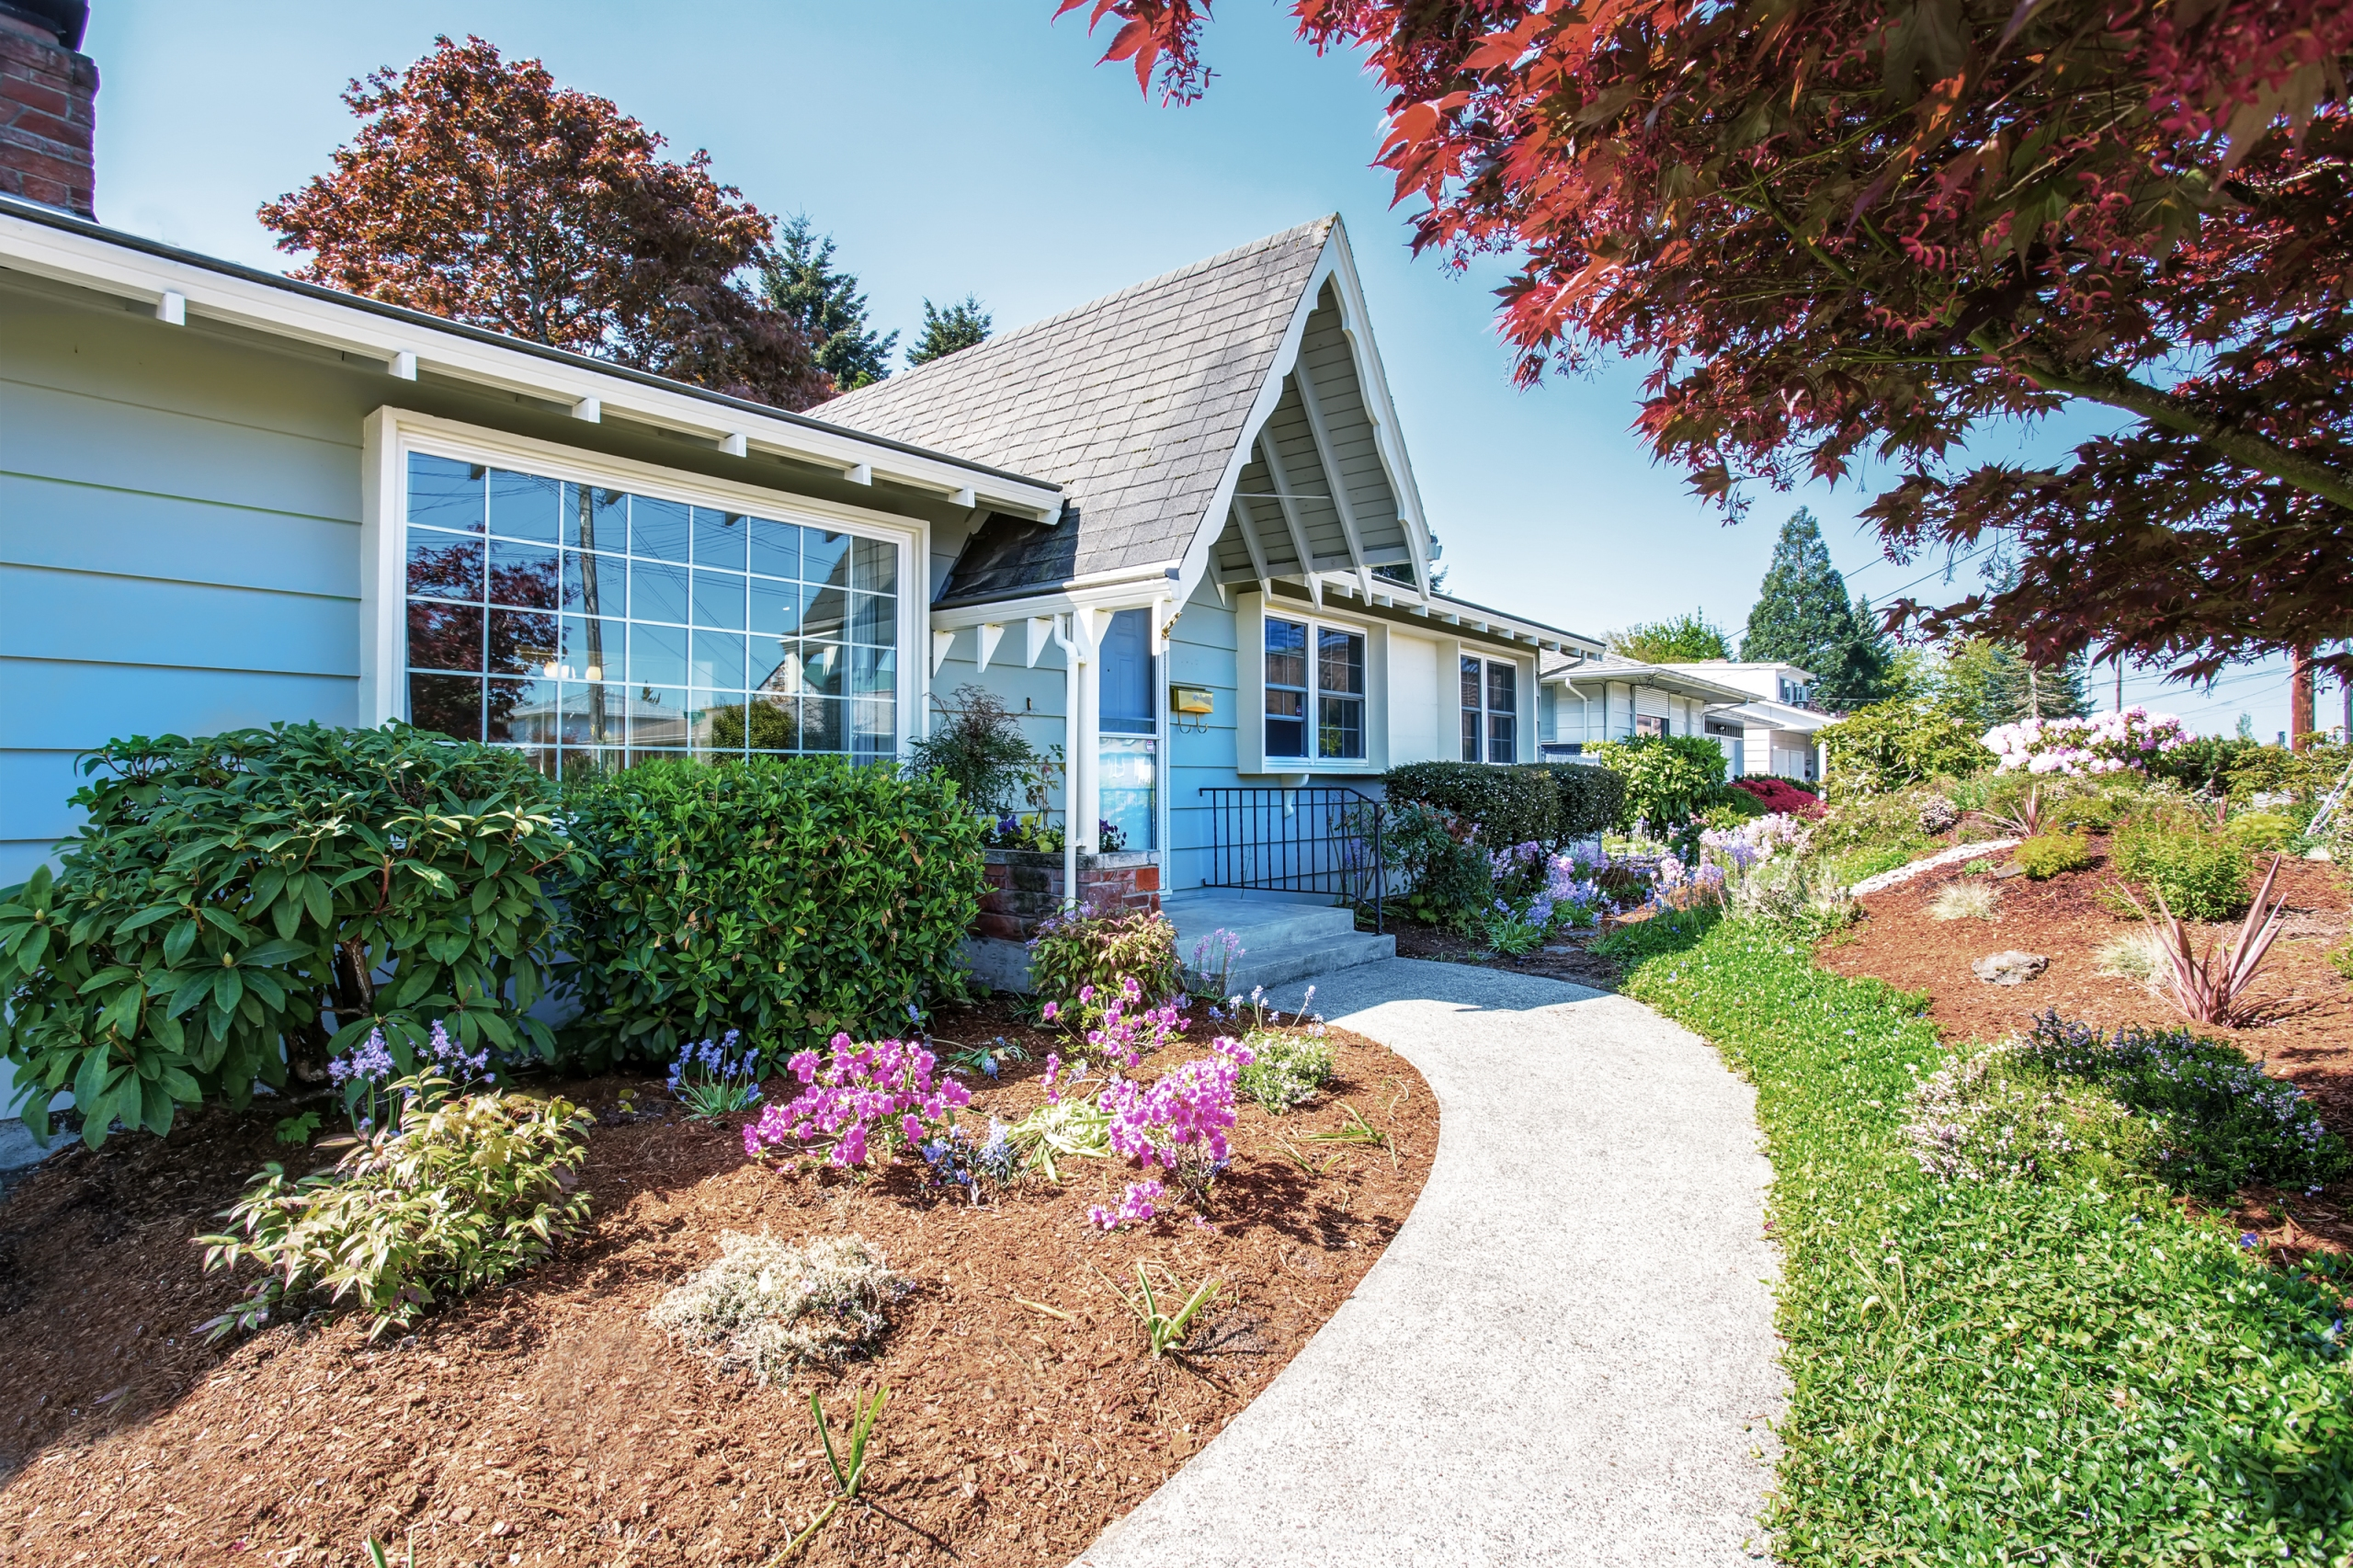 Home with lovely plantings for curb appeal